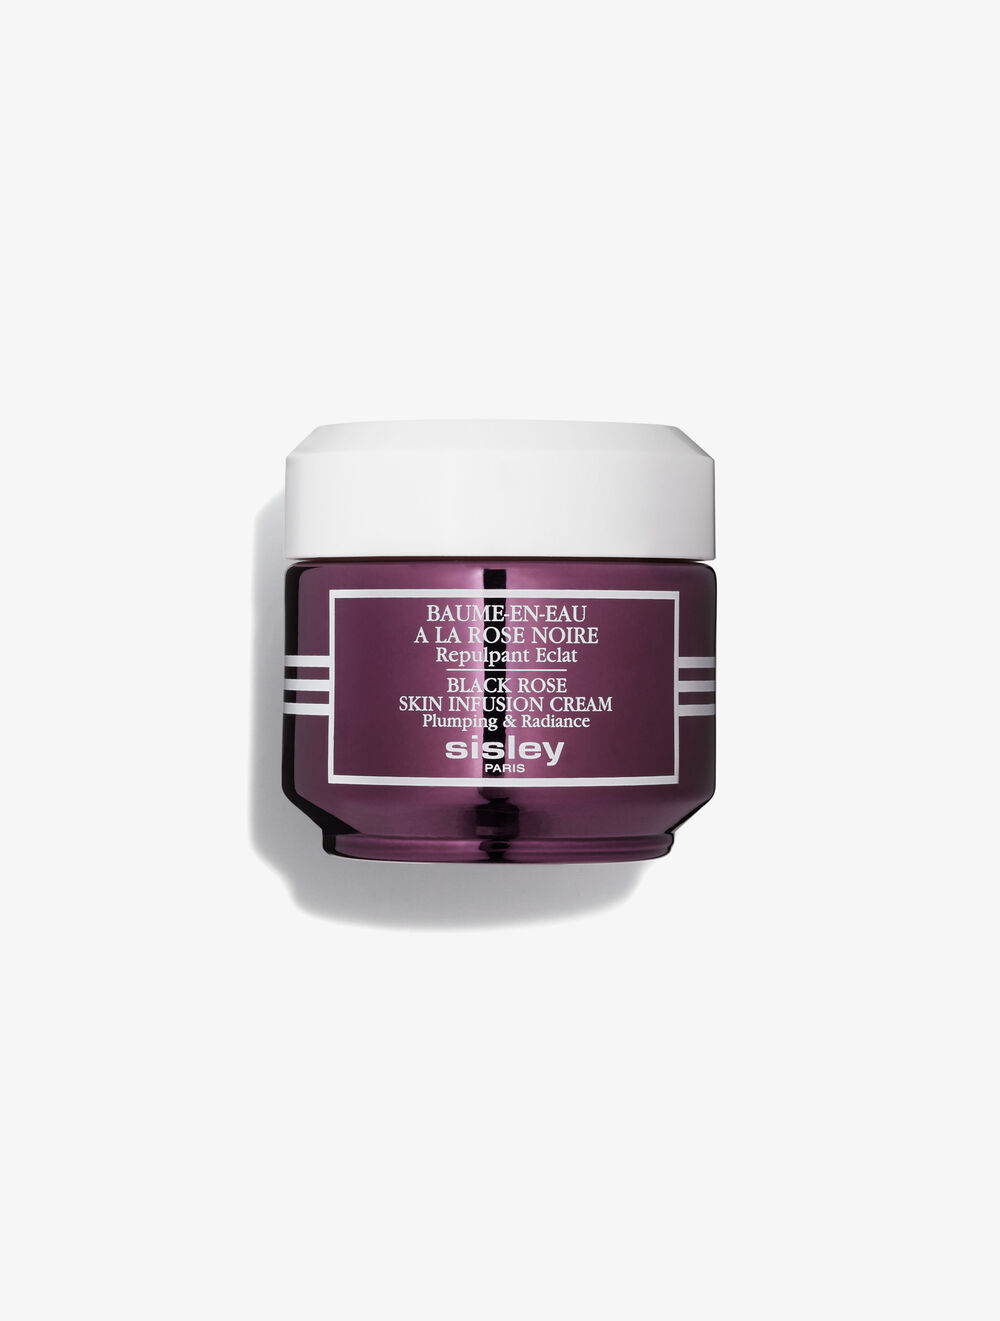 Black Rose Skin Infusion Cream